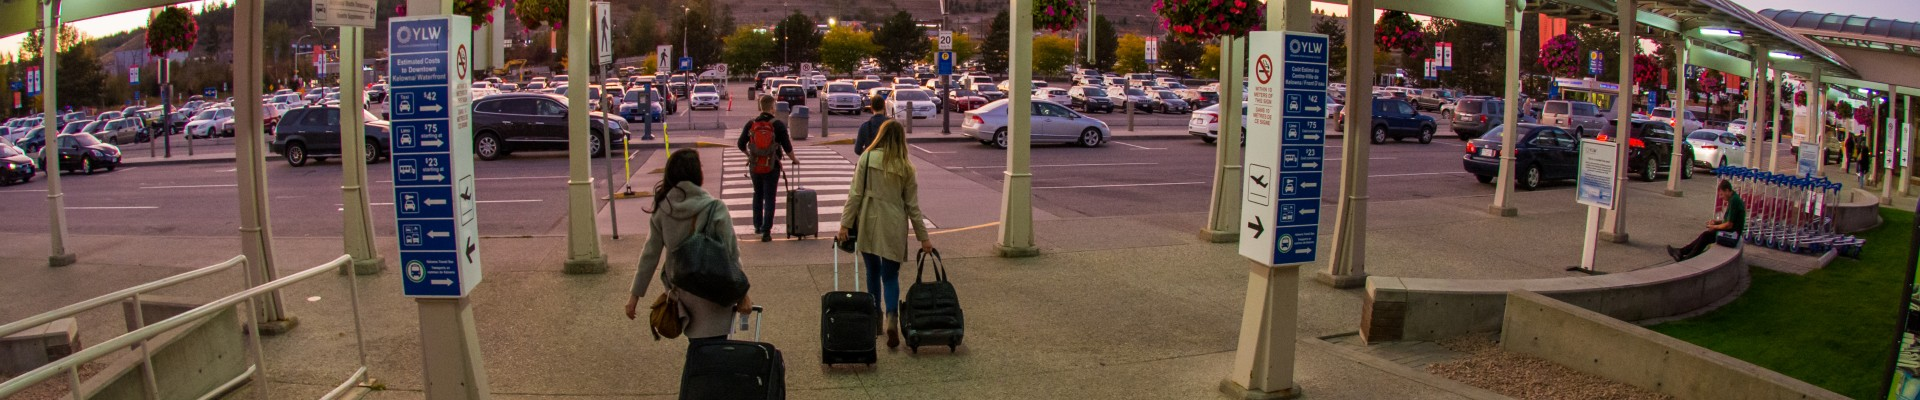 Passengers leaving the terminal at sunset